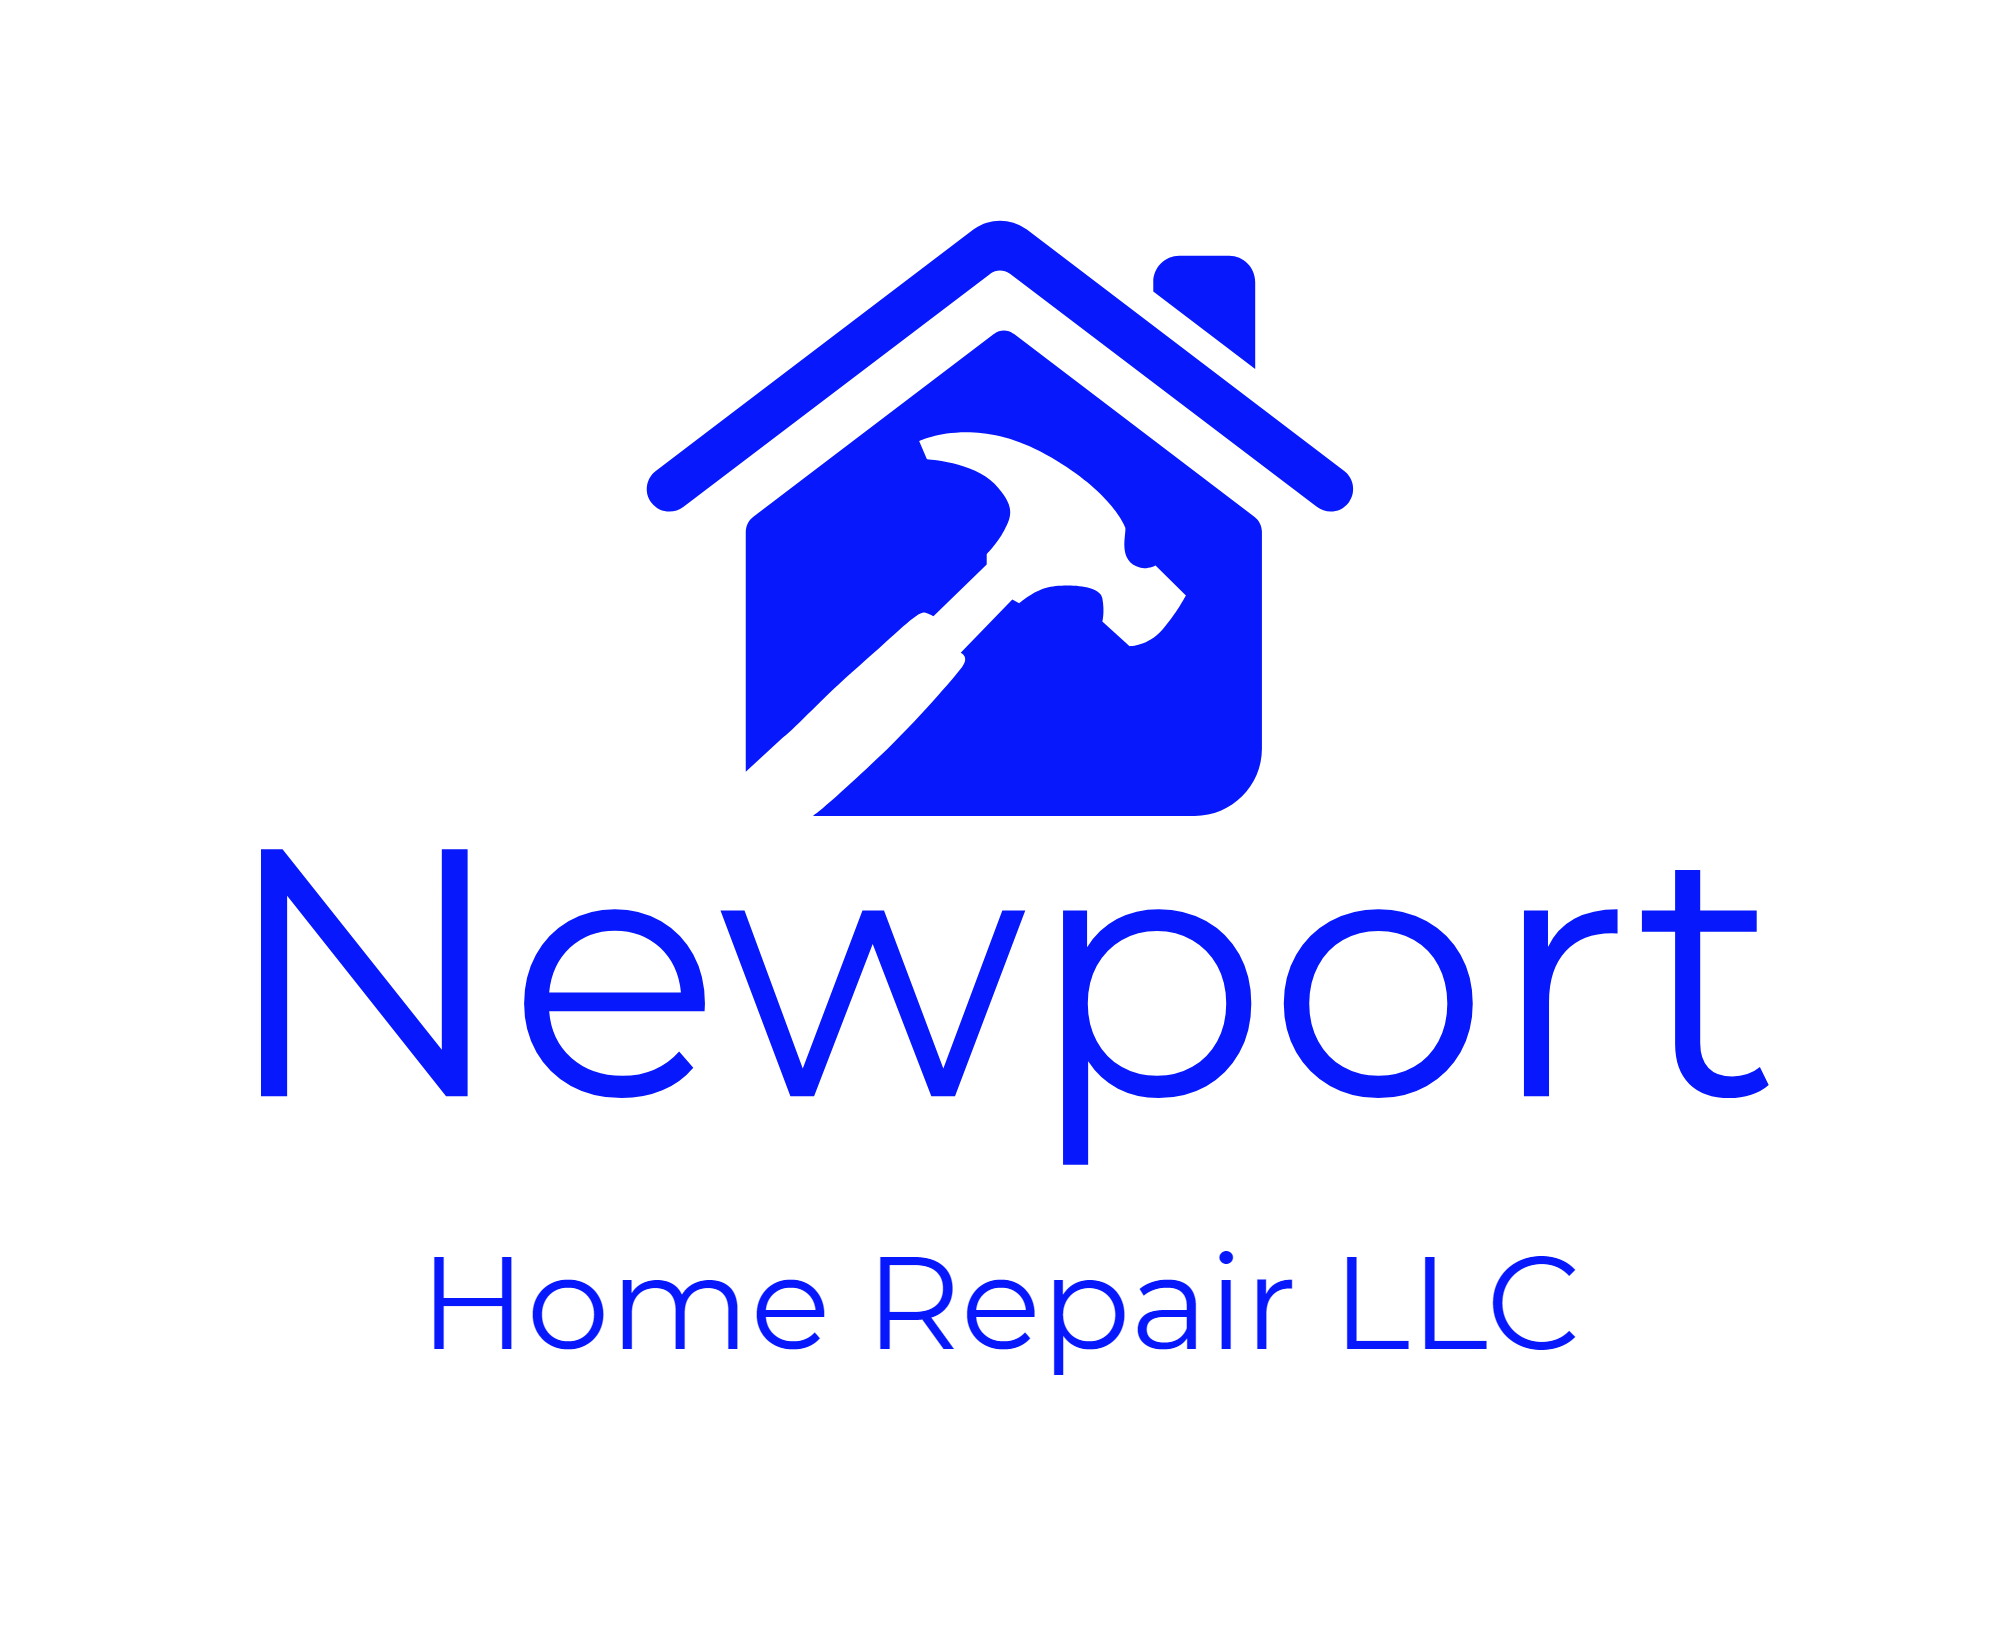 Newport Home Repair LLC - Remodel and Deck Repair